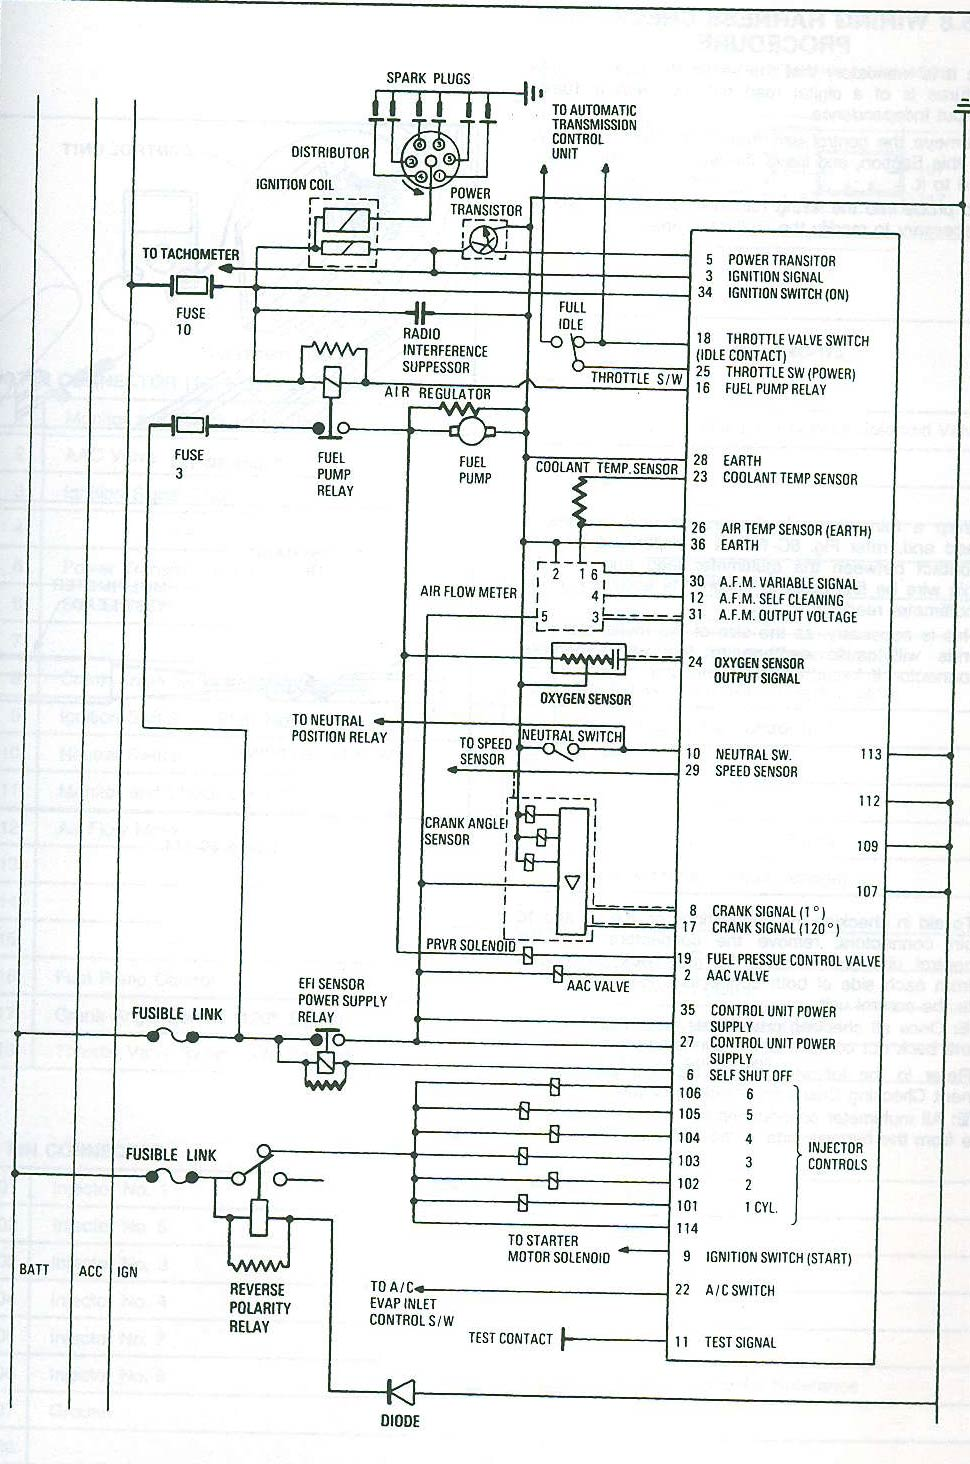 medium resolution of nissan patrol wiring diagram gq wiring diagram sort nissan patrol headlight wiring diagram nissan patrol wiring diagram